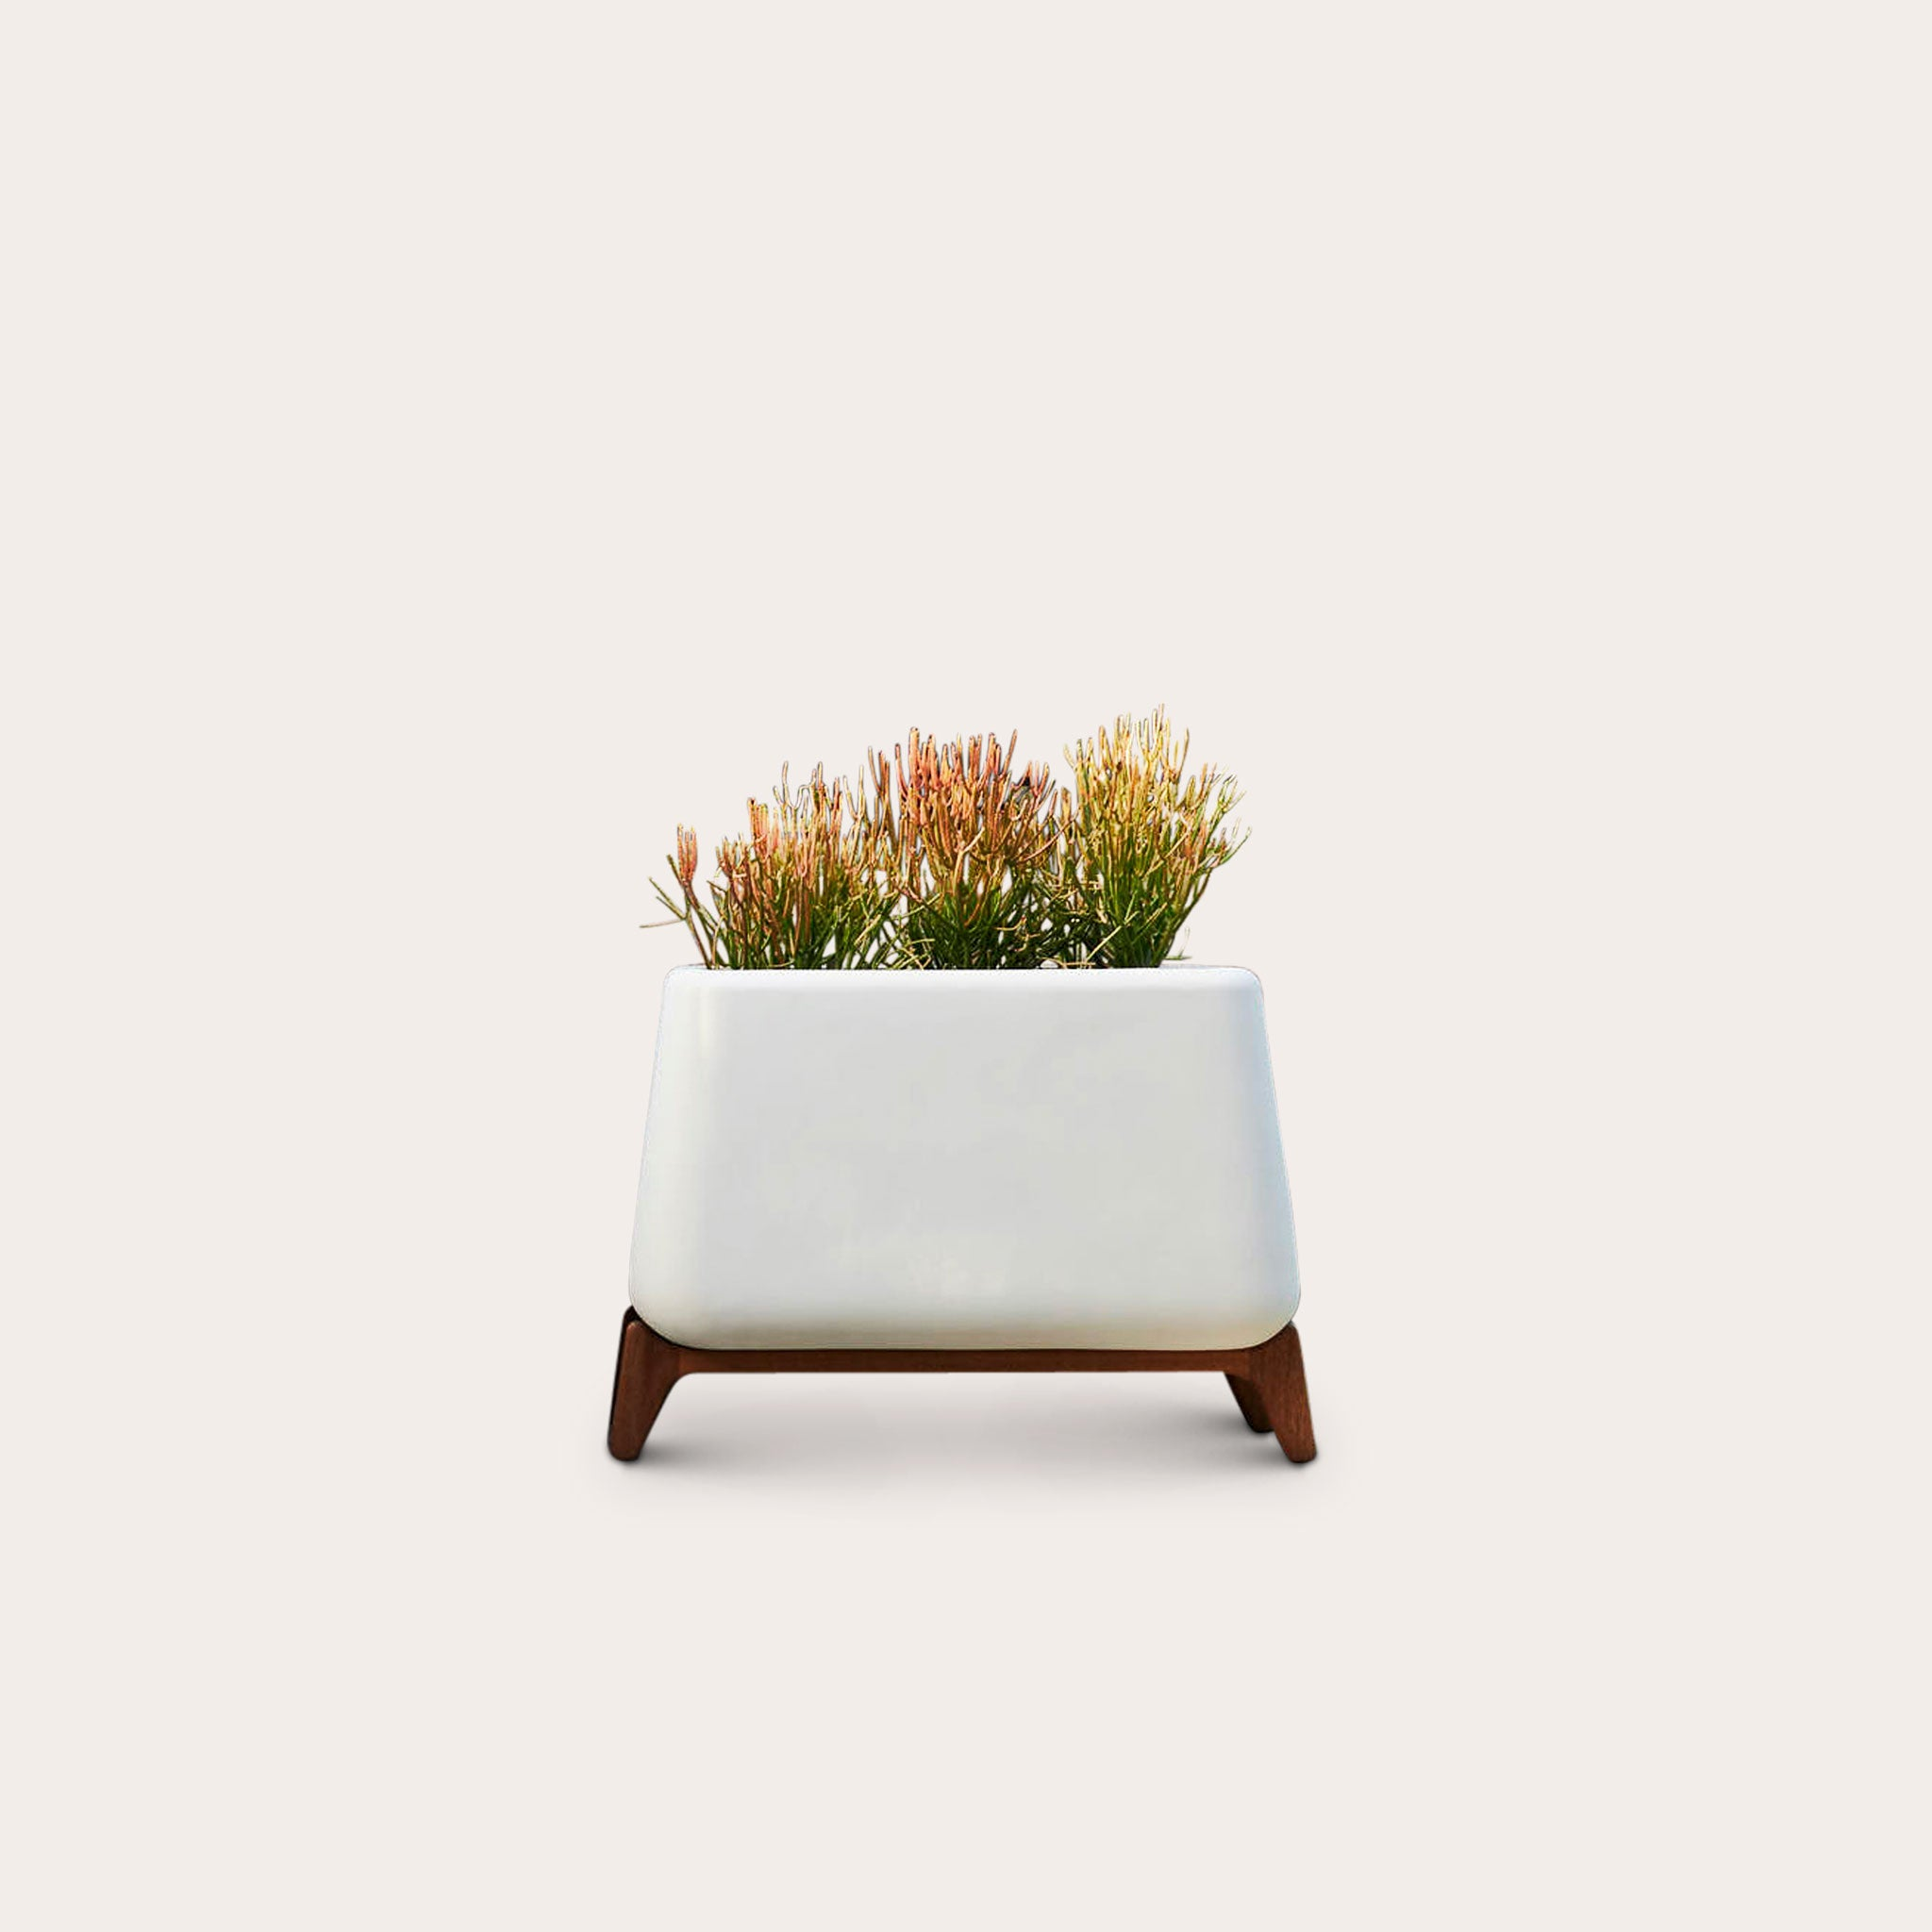 Terra Trough planters Laurie Wiid van Heerden Designer Furniture Sku: 621-100-10009